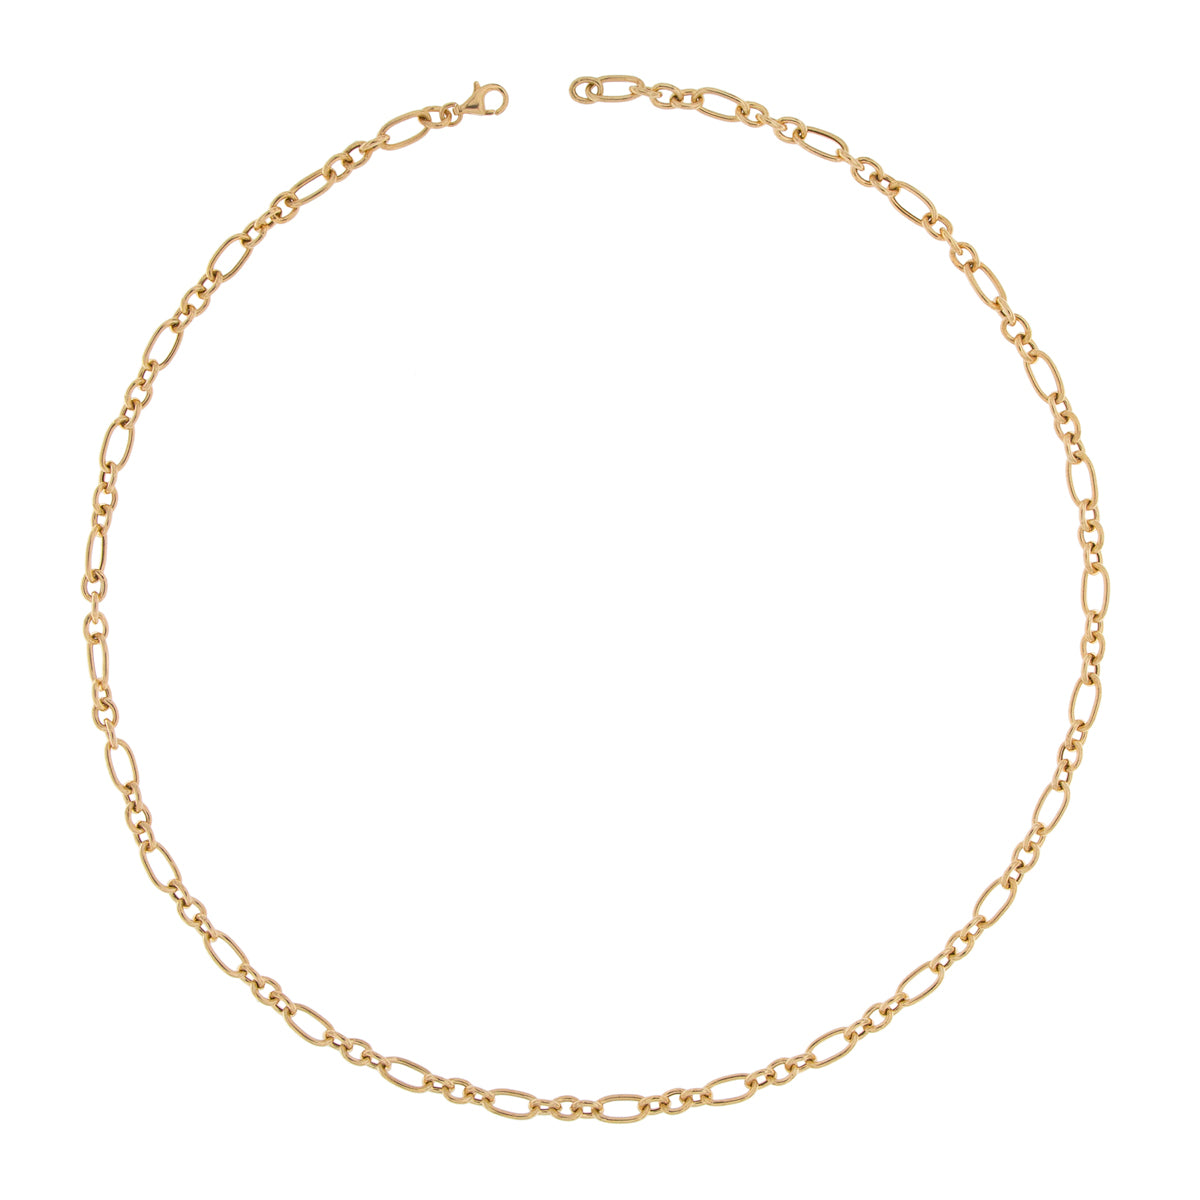 Chokers - Necklace With Vintage Alternating Cable Chain  - 1 | Rue des Mille